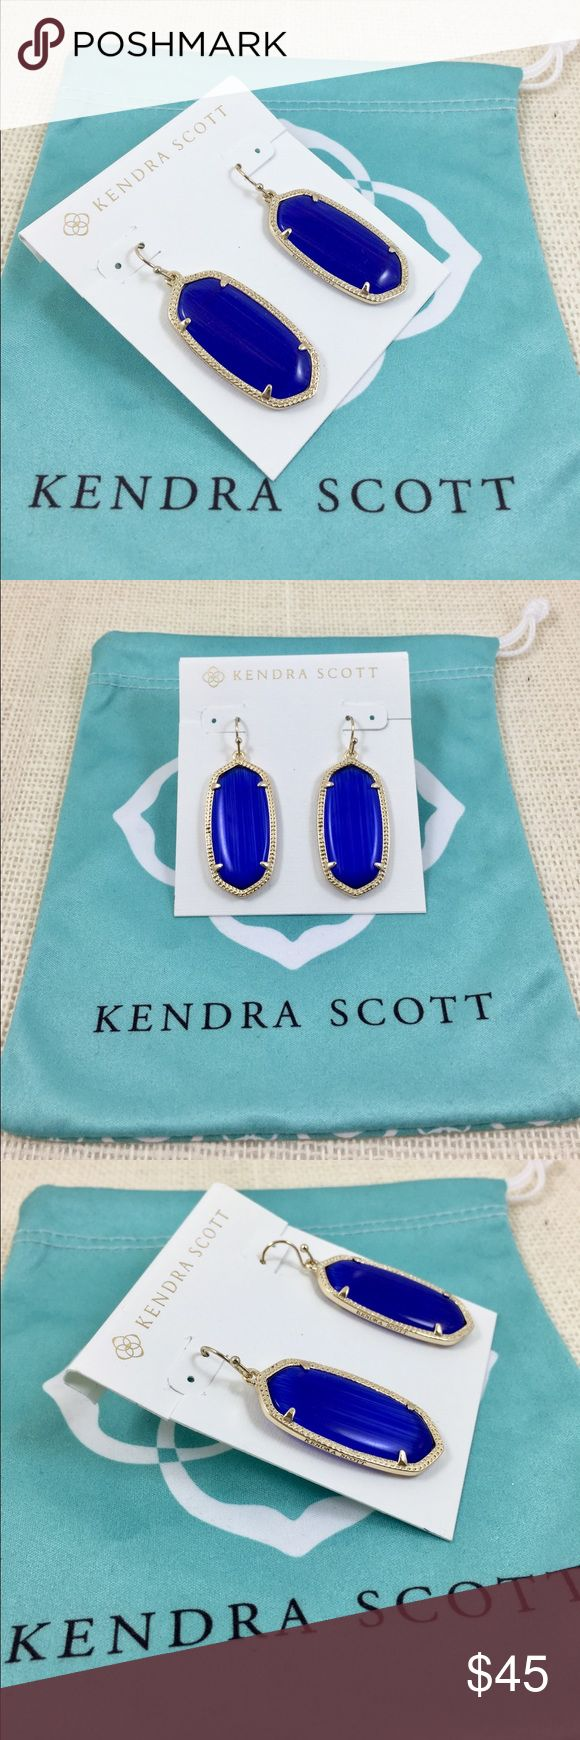 """Kendra Scott Elle gold tone cobalt blue earrings Kendra Scott Elle gold tone cobalt blue earrings. 14K gold plated over brass. Size: 1.44""""L x0.69""""W on earwire. New with Kendra Scott earrings card and pouch. No tags. Kendra Scott Jewelry Earrings"""